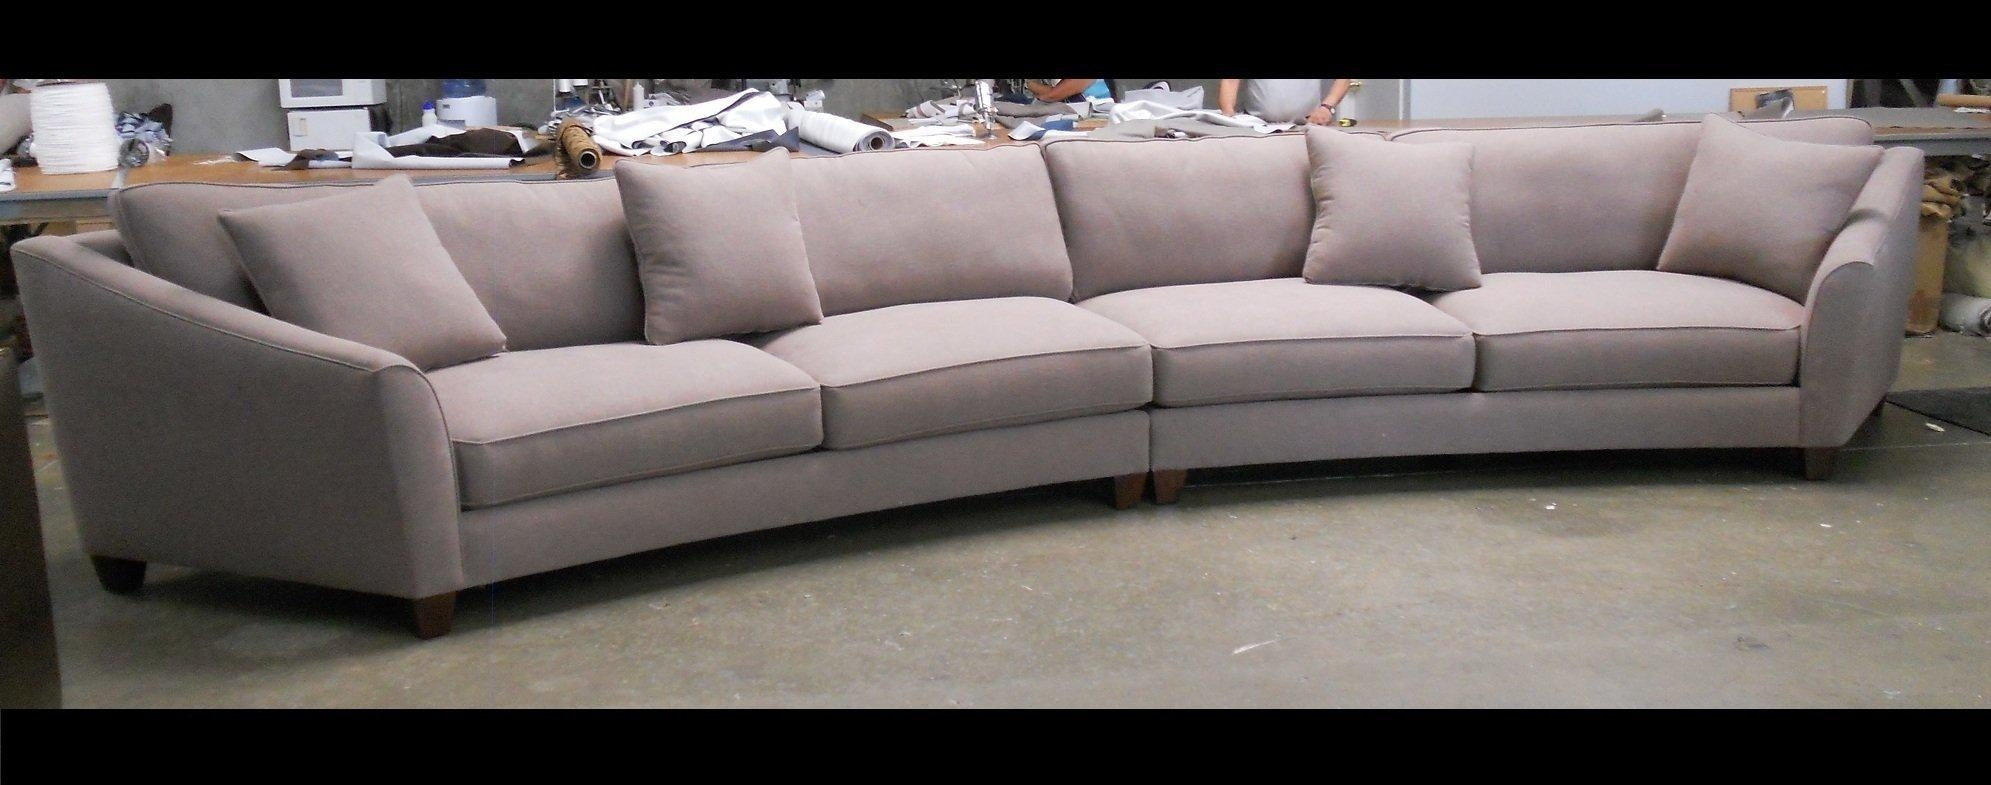 Sofas Center : Rare Roundional Sofa Photos Ideas Rounded L Outdoor In Rounded Sofa (Image 18 of 20)